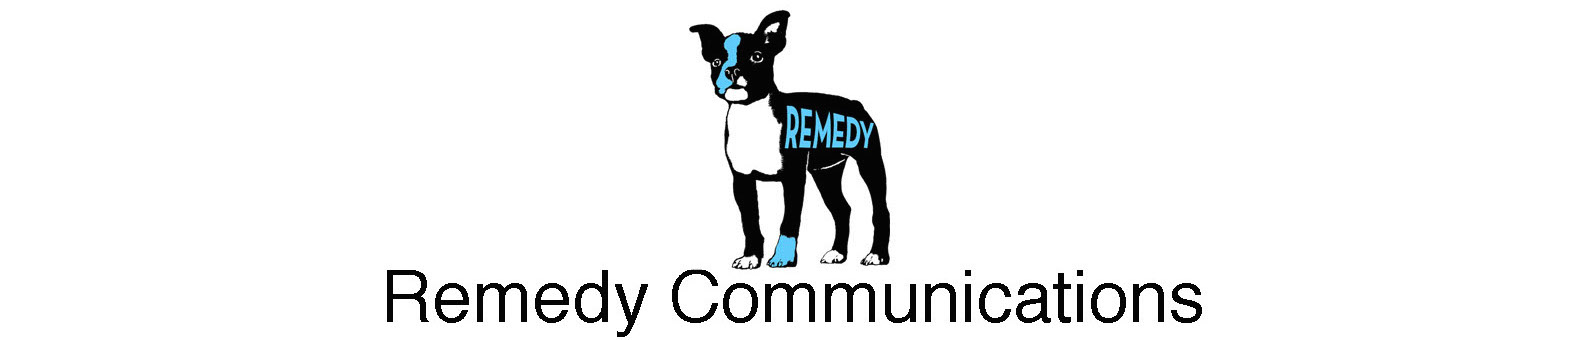 San Diego's Leading PR And Social Media Consultancy - Remedy Communications